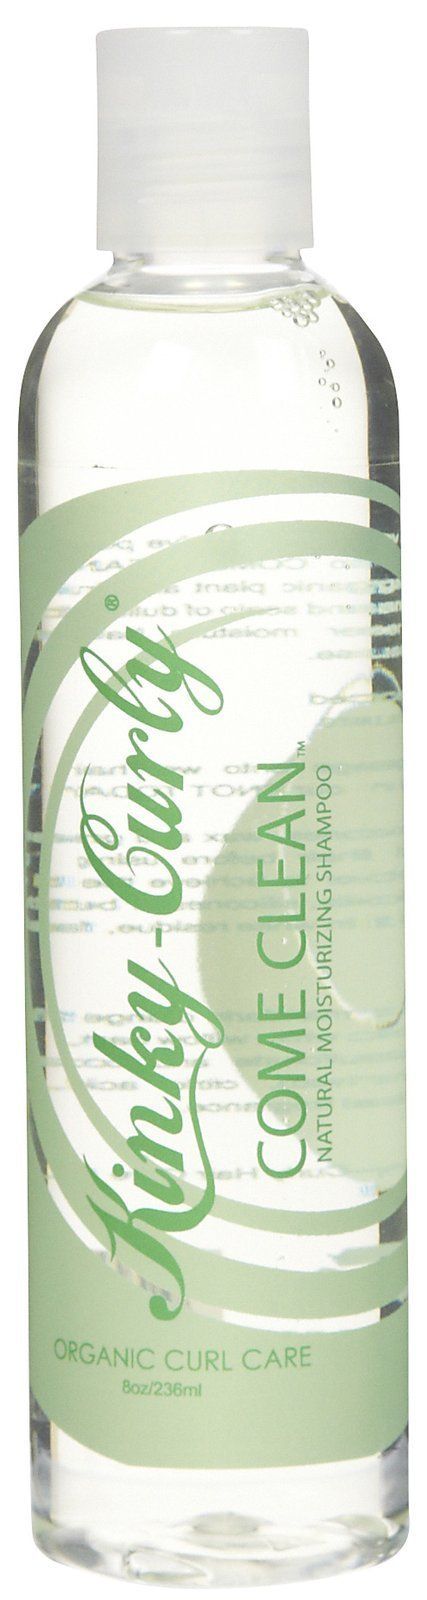 Kinky Curly Come Clean Natural Moisturizing Shampoo Sulfate Free 8 oz